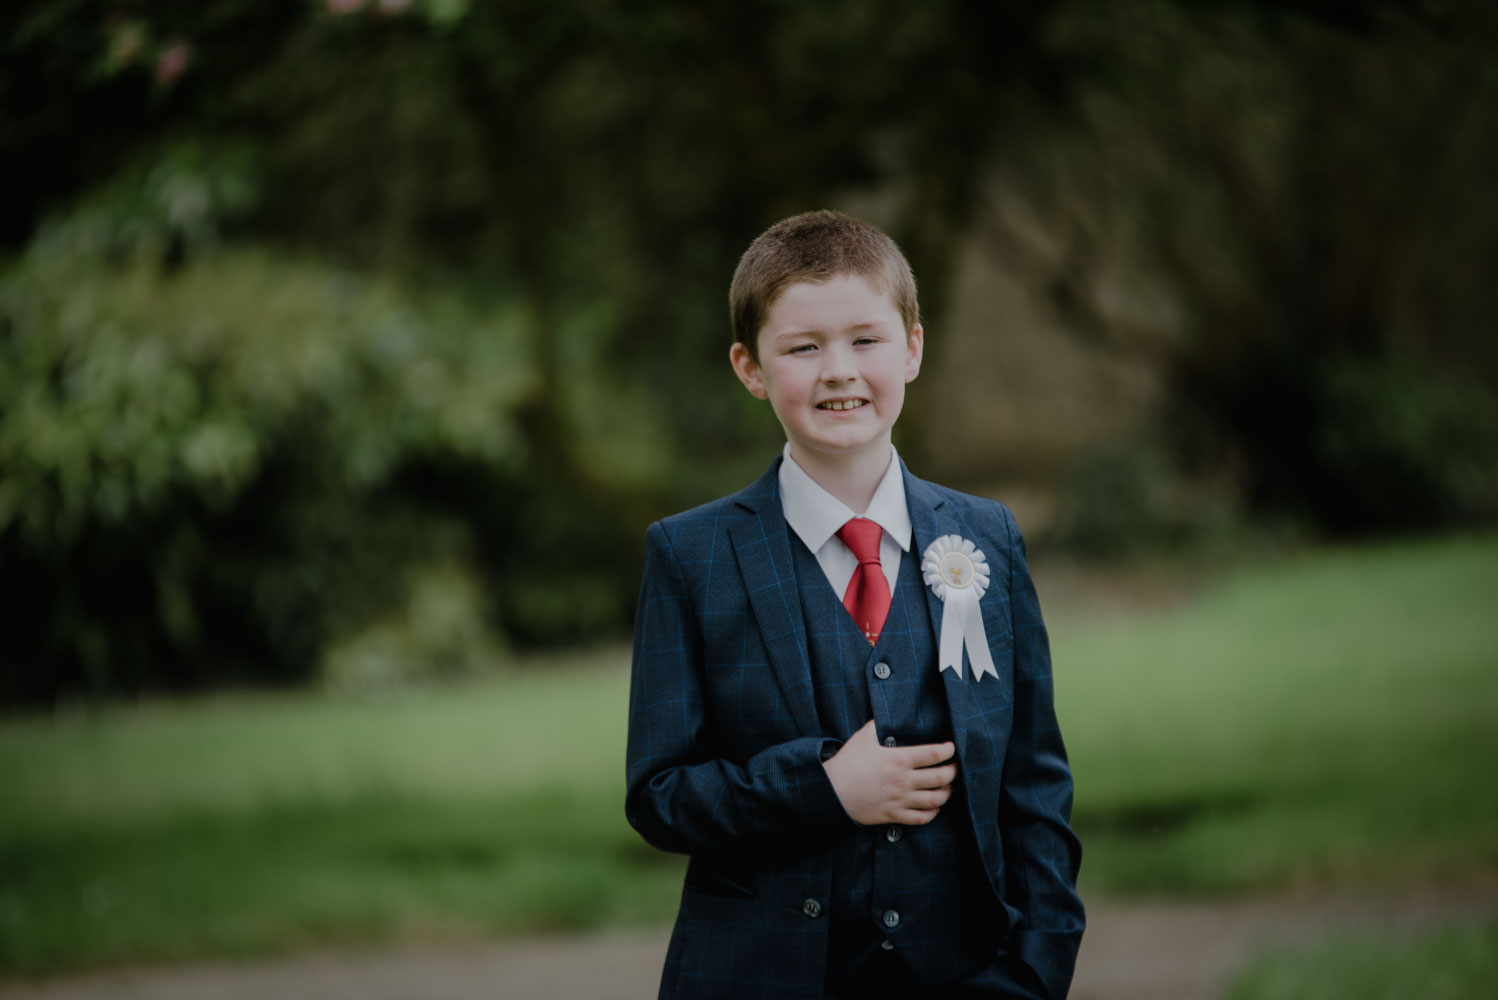 Sean and His Communion Day 05.05.18